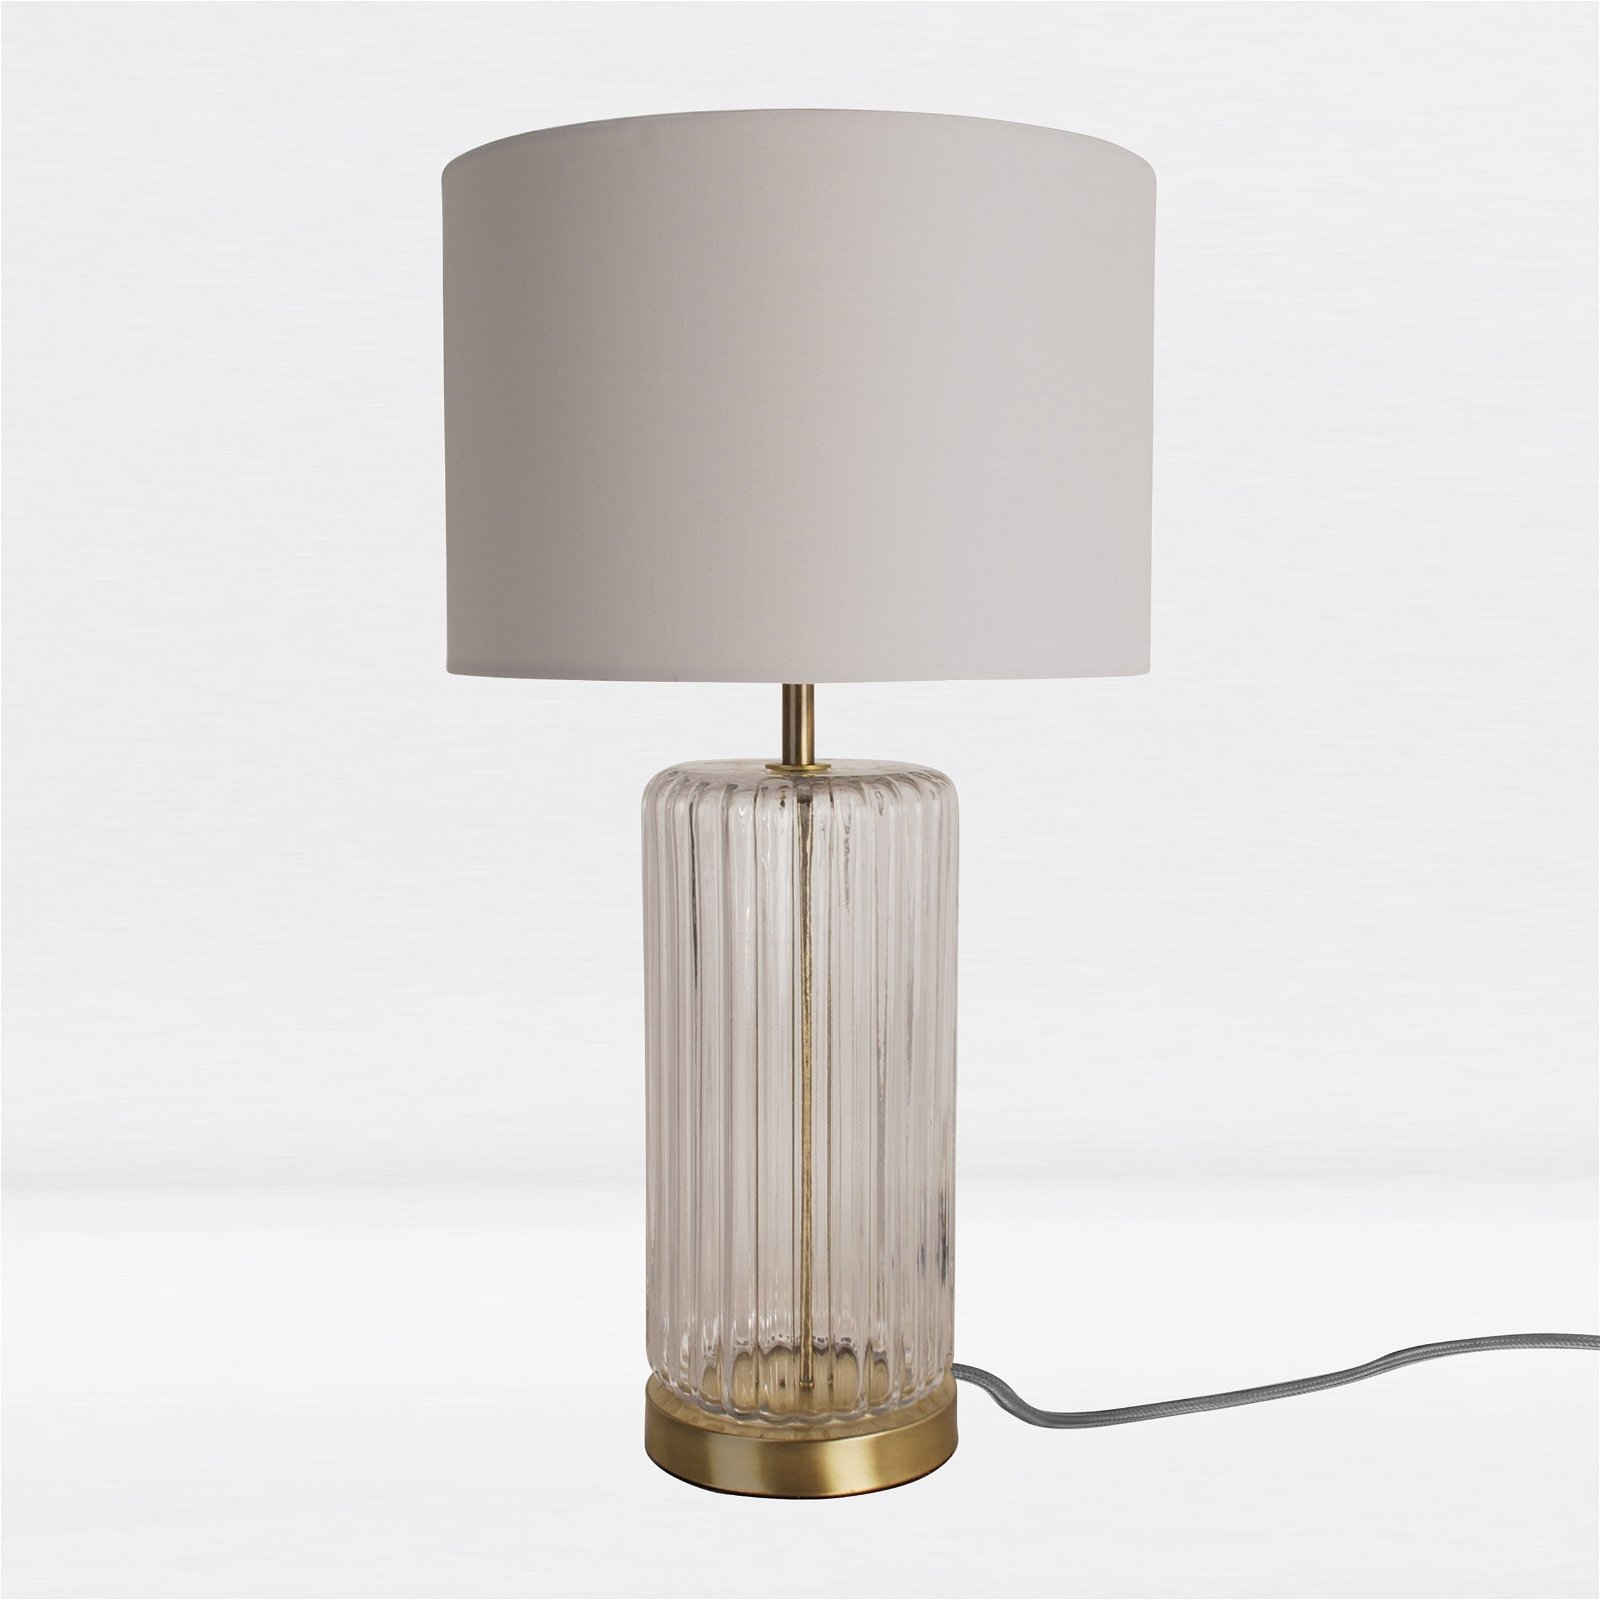 Fluted Design Table Lamp Finished In Clear Glass And Bronze Effect Colour With A Ivory Woven Rolled Edge Cylinder Fabric Shade